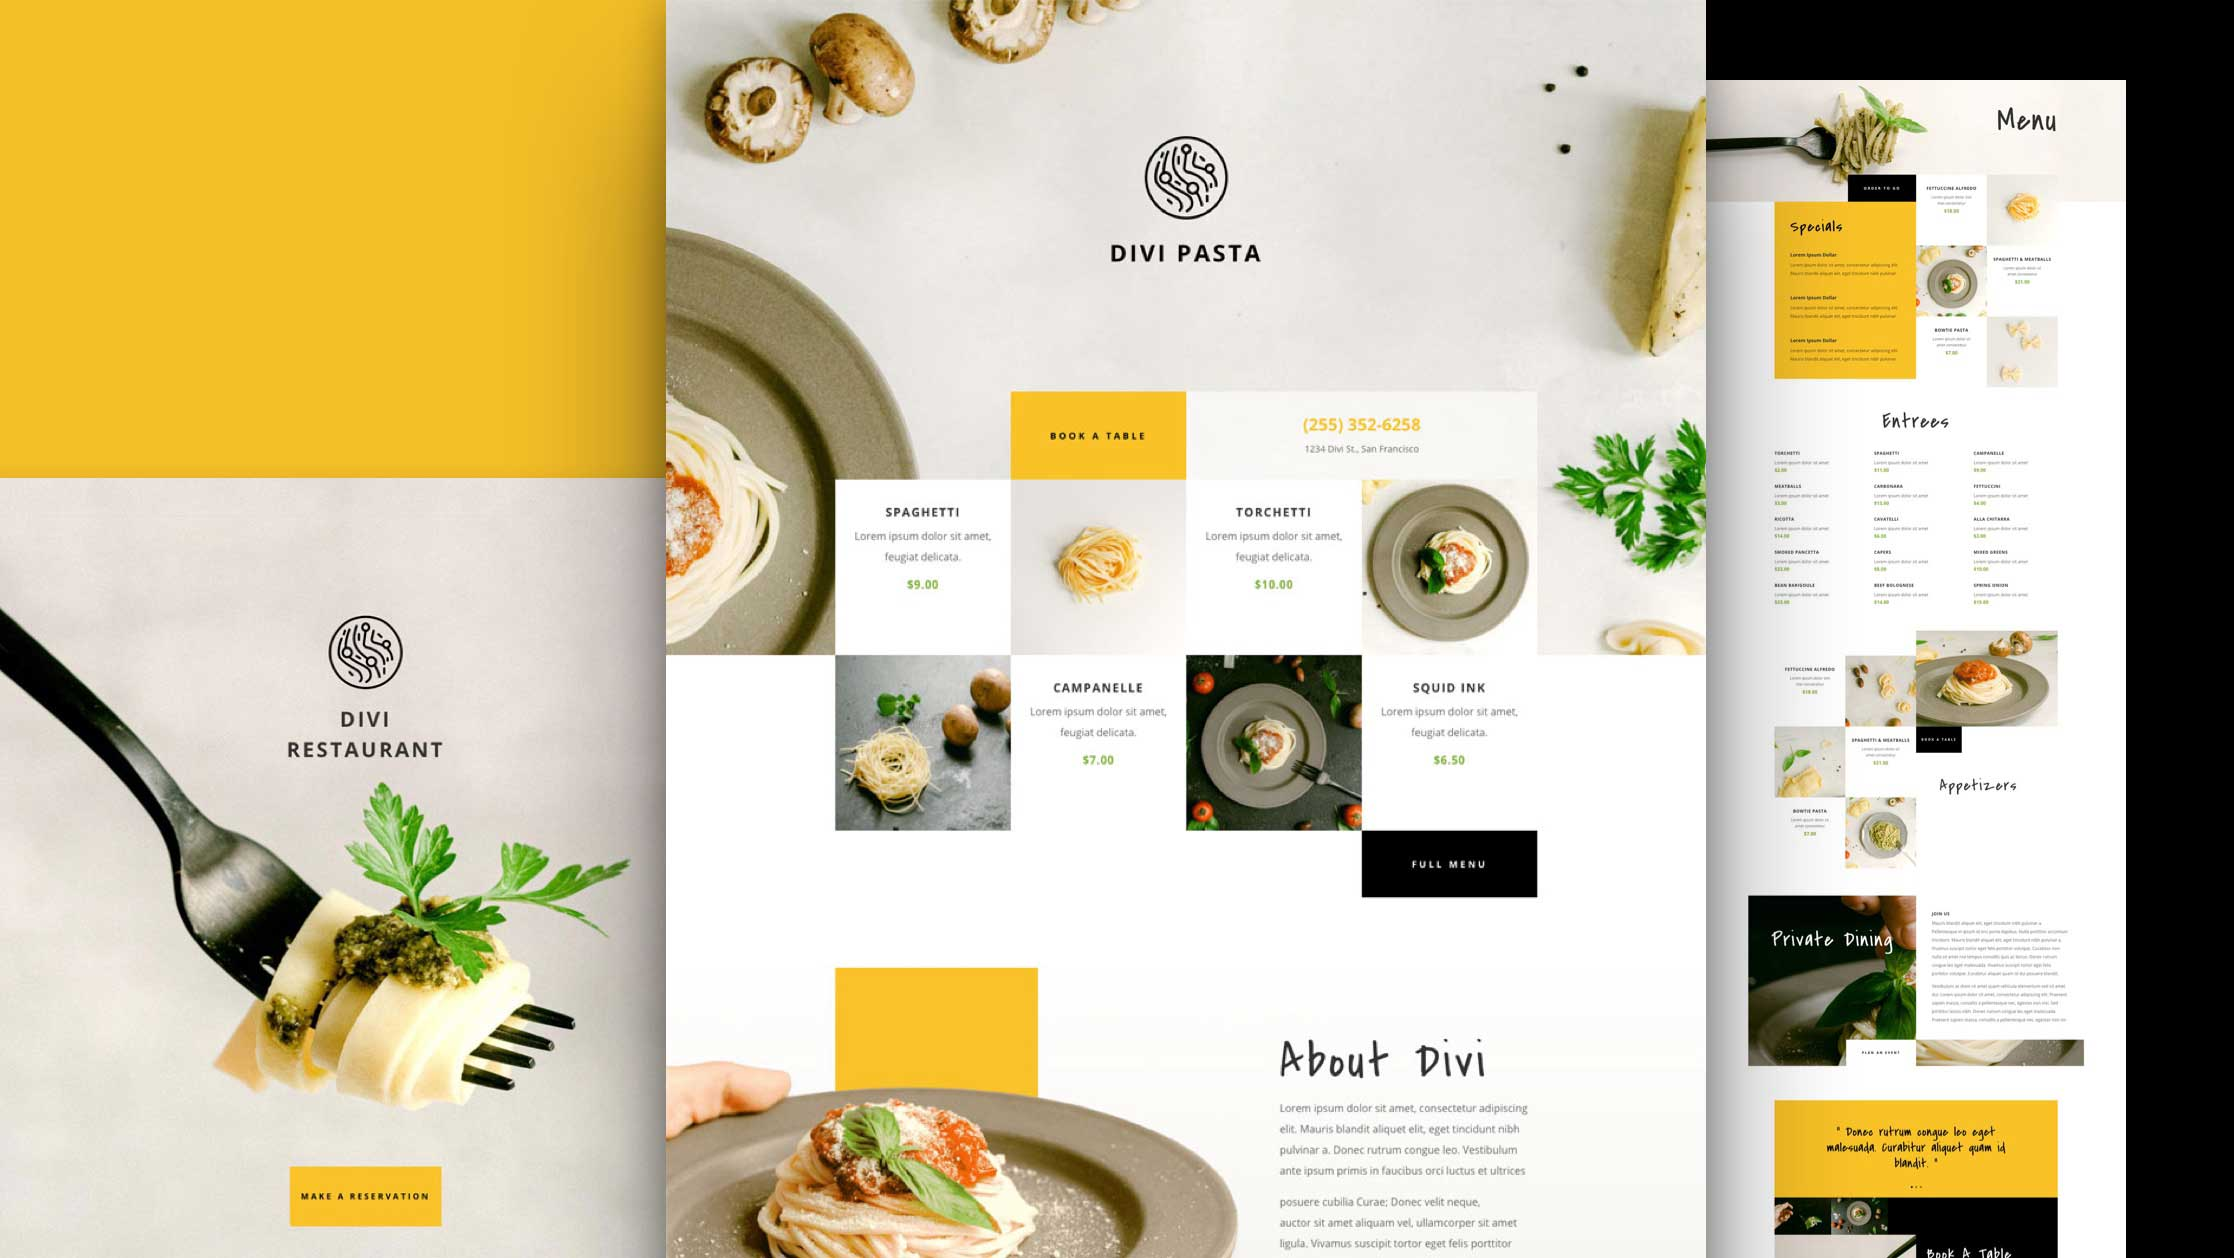 Get a FREE Italian Restaurant Layout Pack for Divi